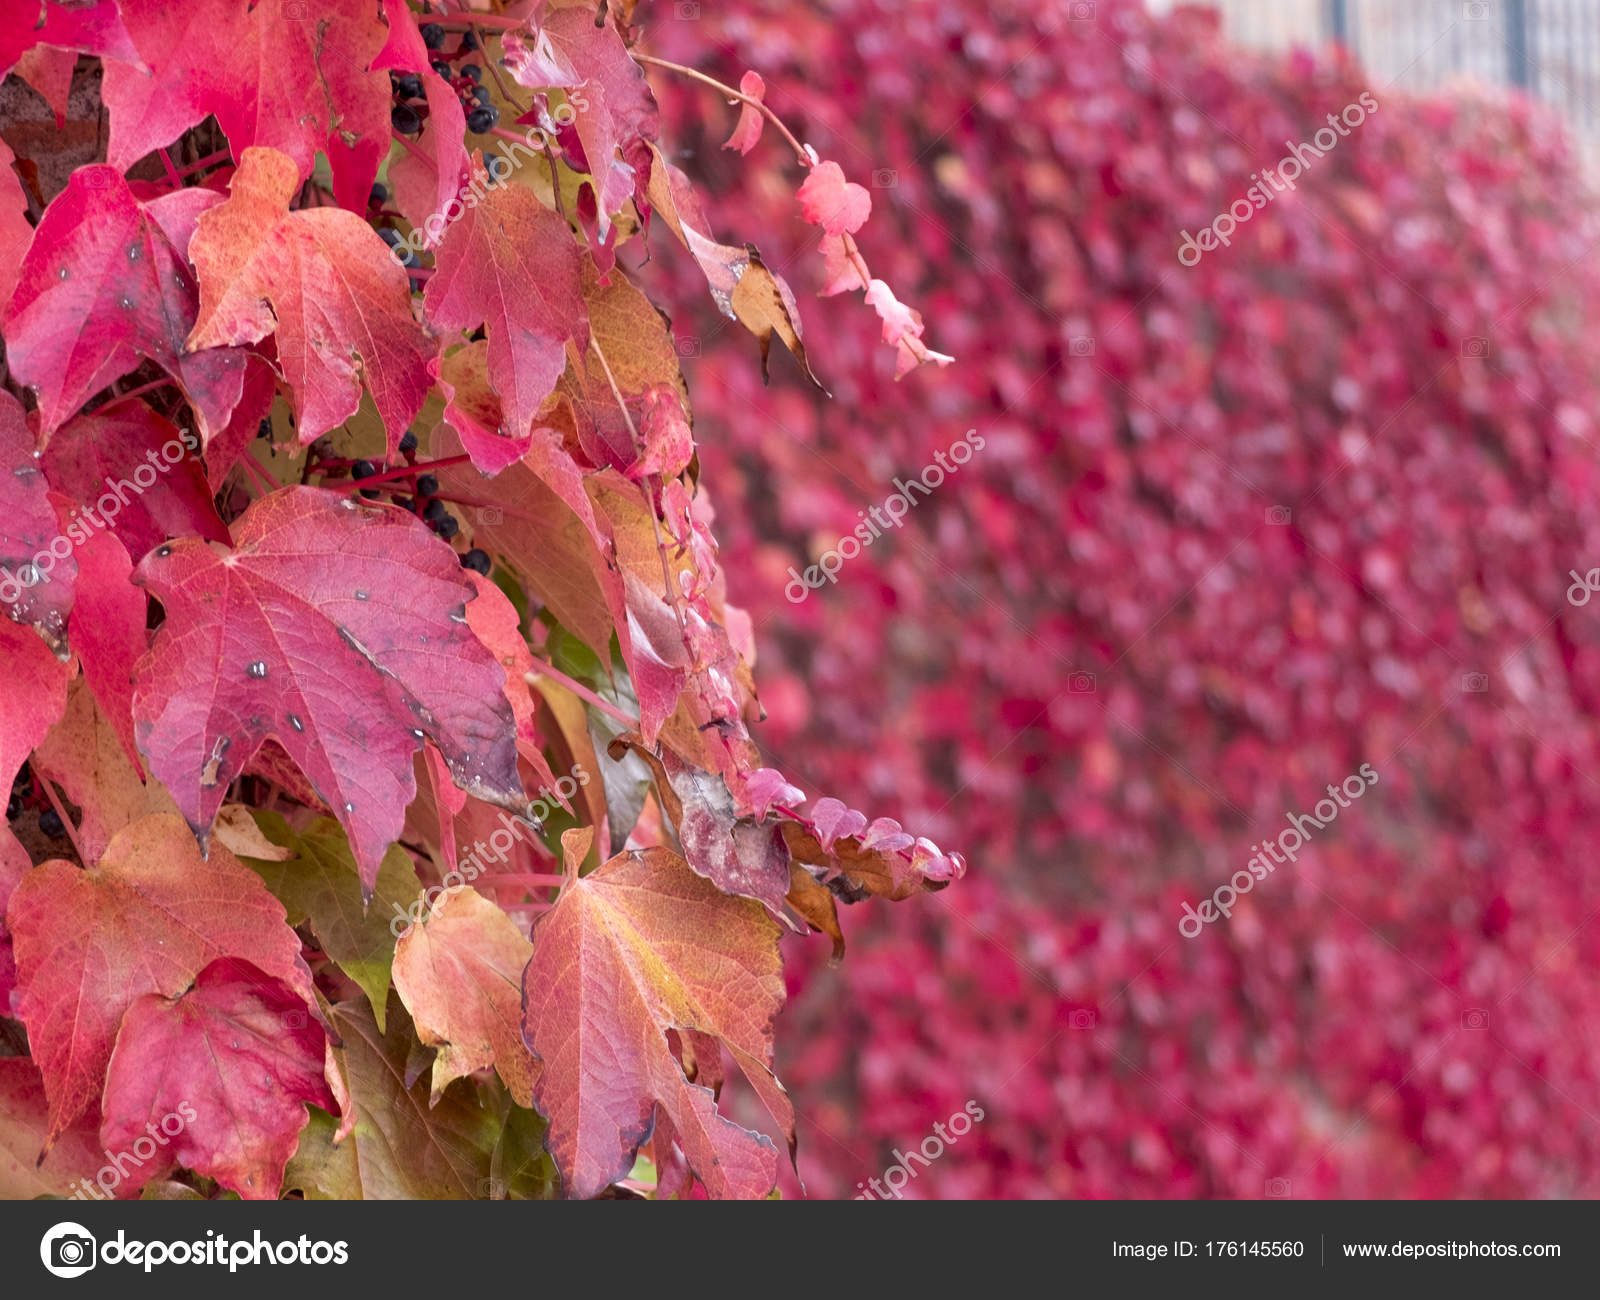 Climbing Plant With Red Leaves And Blue Berries In Autumn On The